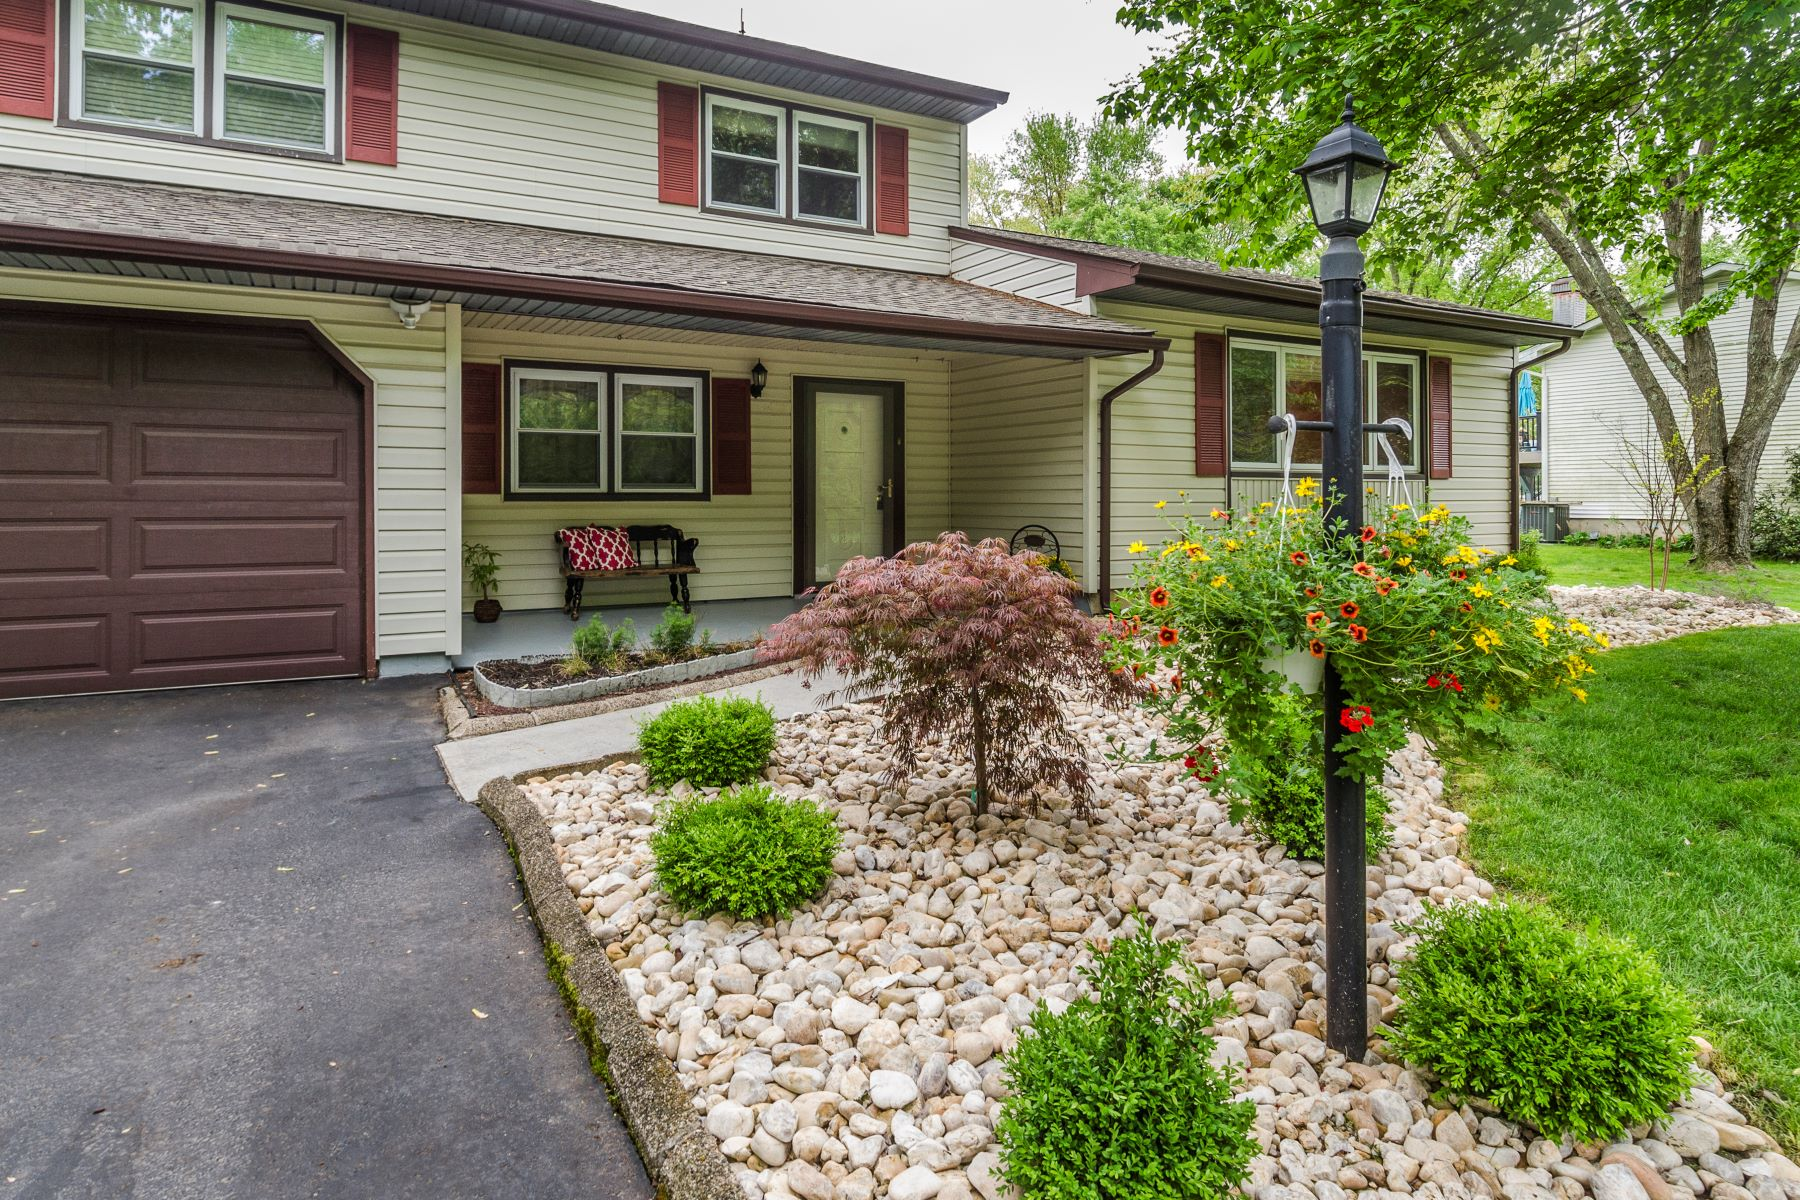 Single Family Home for Sale at Charming Home on a Generous .46 Acre Lot 44 Hankins Road, East Windsor, New Jersey 08520 United States